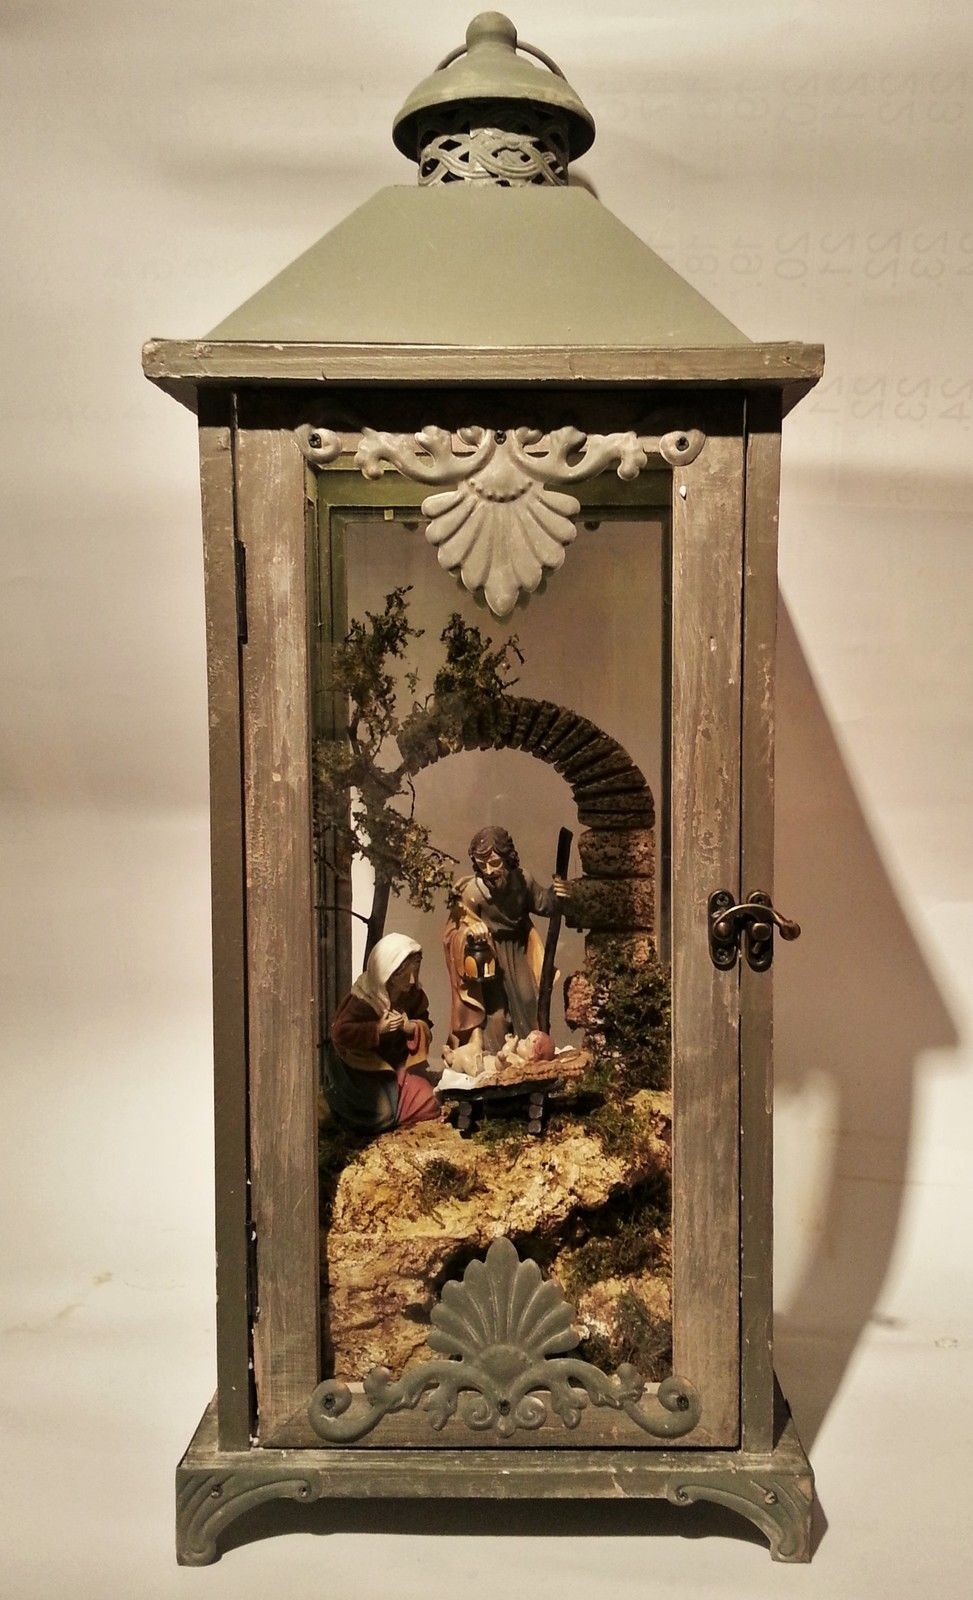 laternen krippe mit beleuchtung und figuren 60 cm hoch ebay nativity krippen pinterest. Black Bedroom Furniture Sets. Home Design Ideas